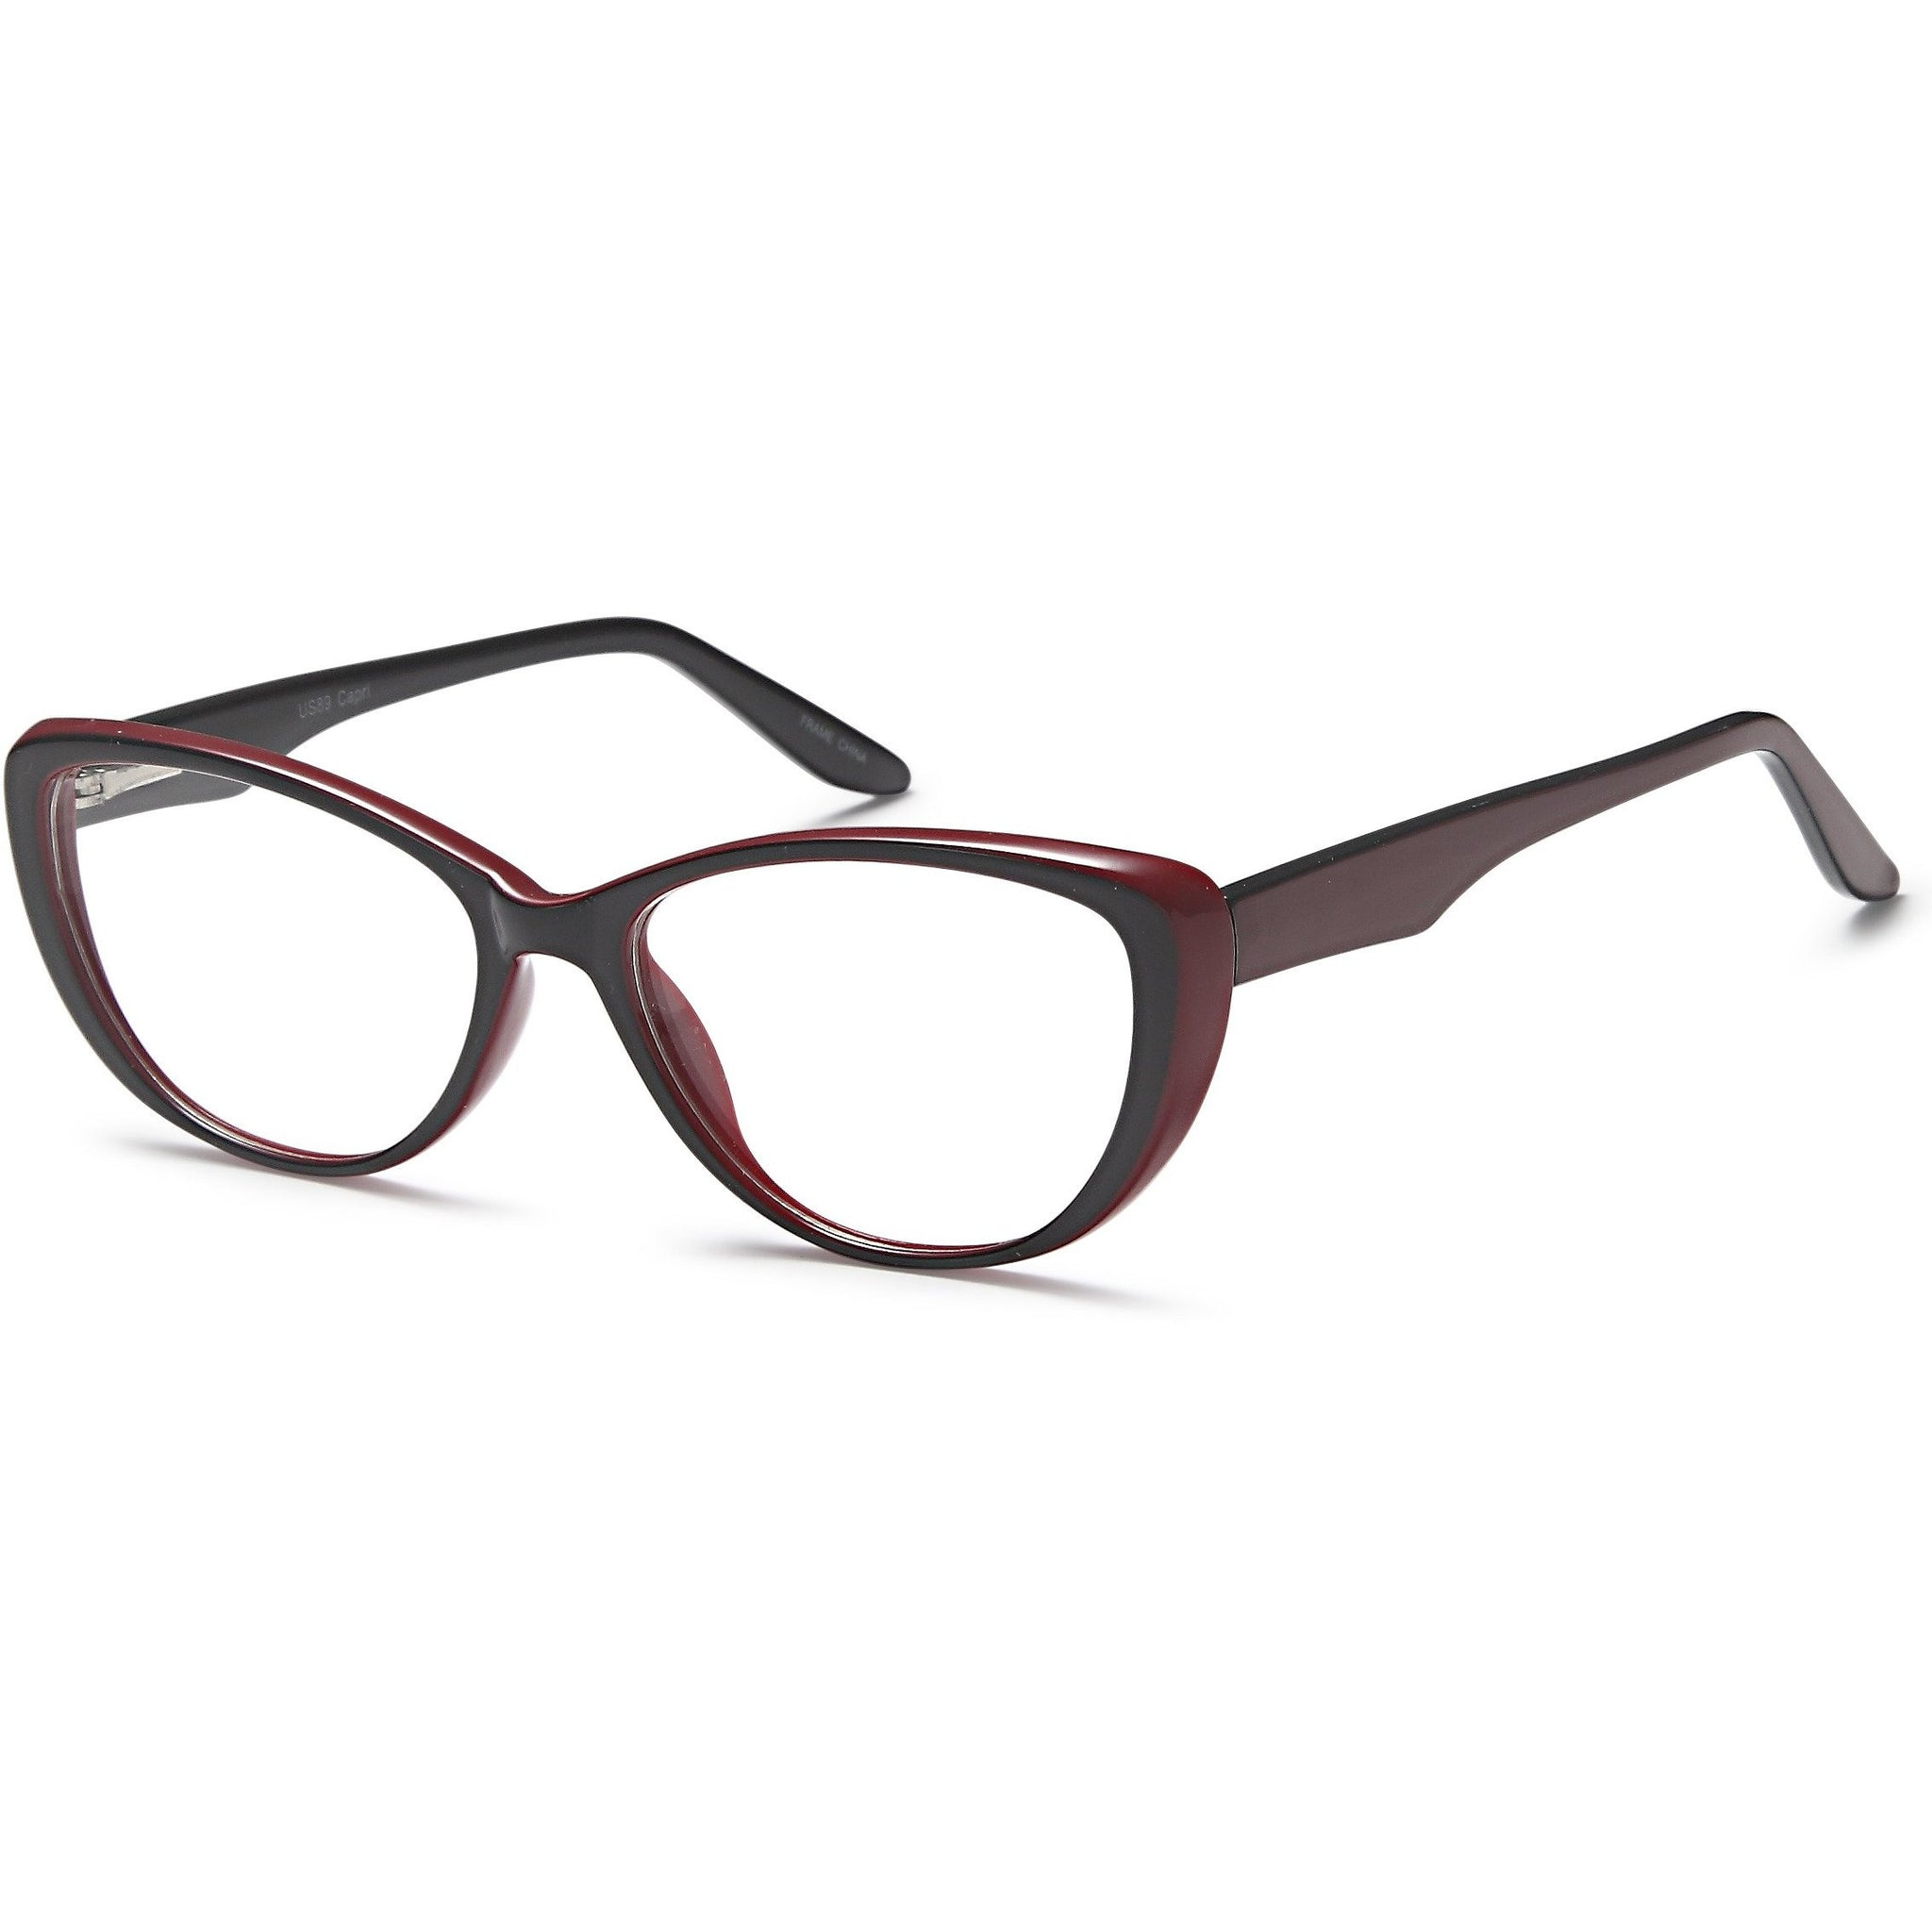 2U Prescription Glasses US 89 Optical Eyeglasses Frames